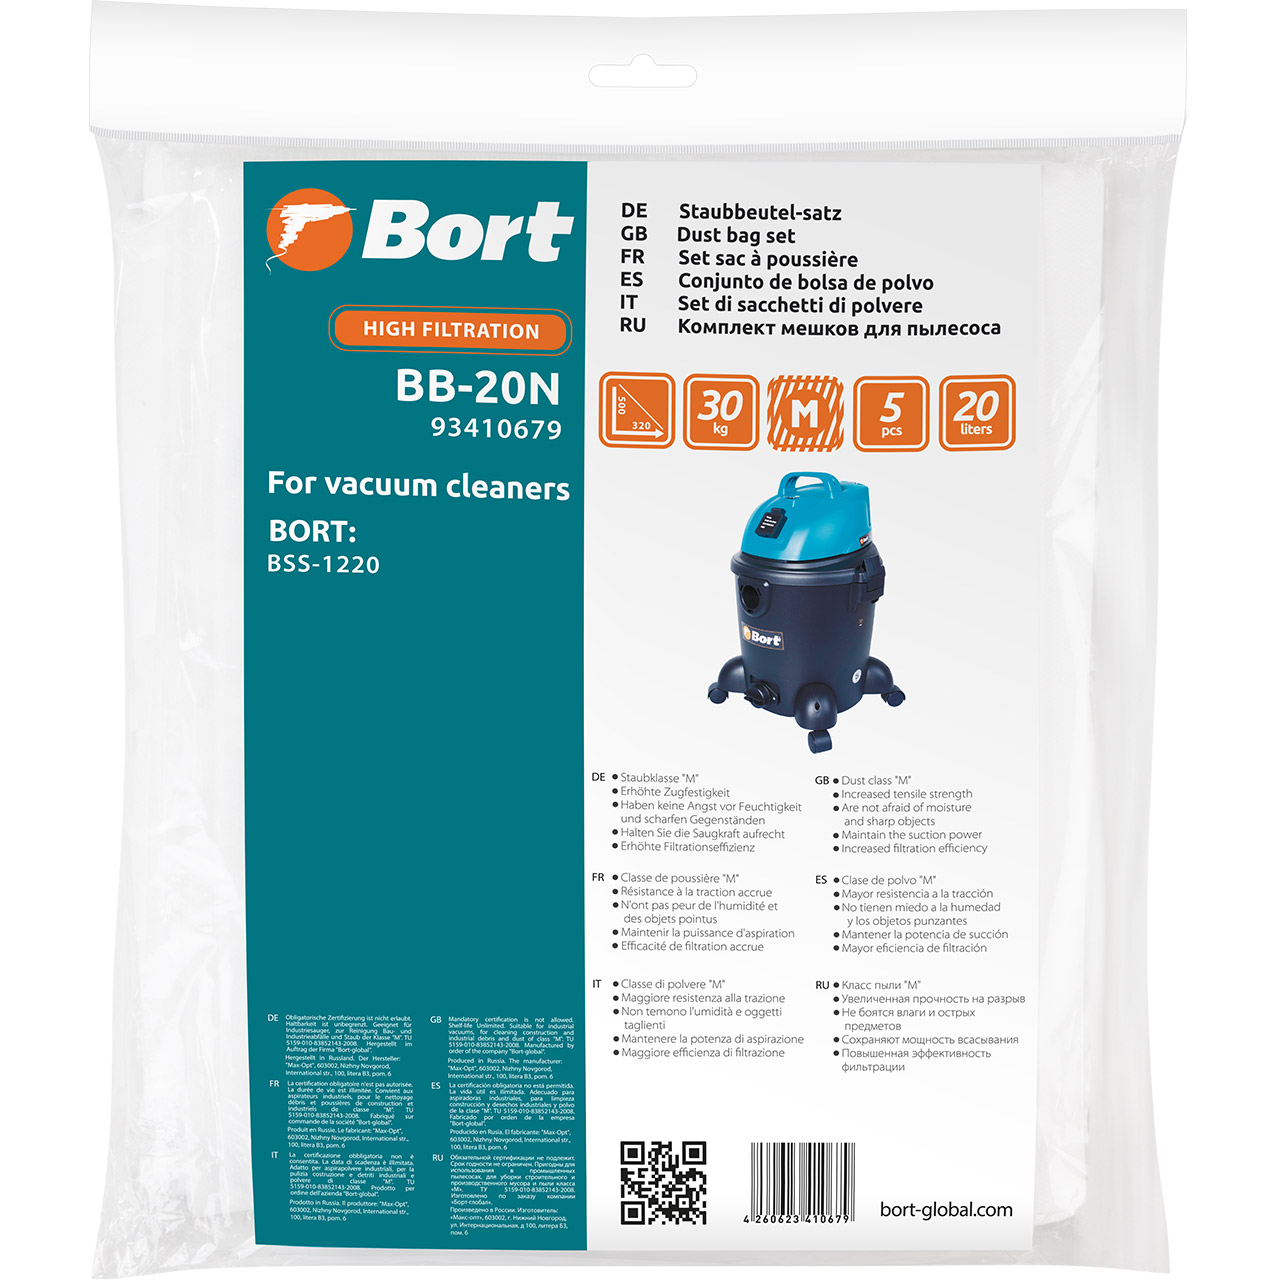 Bags set dust collection for vacuum Cleaner bort BB-20N (volume 20 liter, 5 pcs, BSS-1220) стоимость